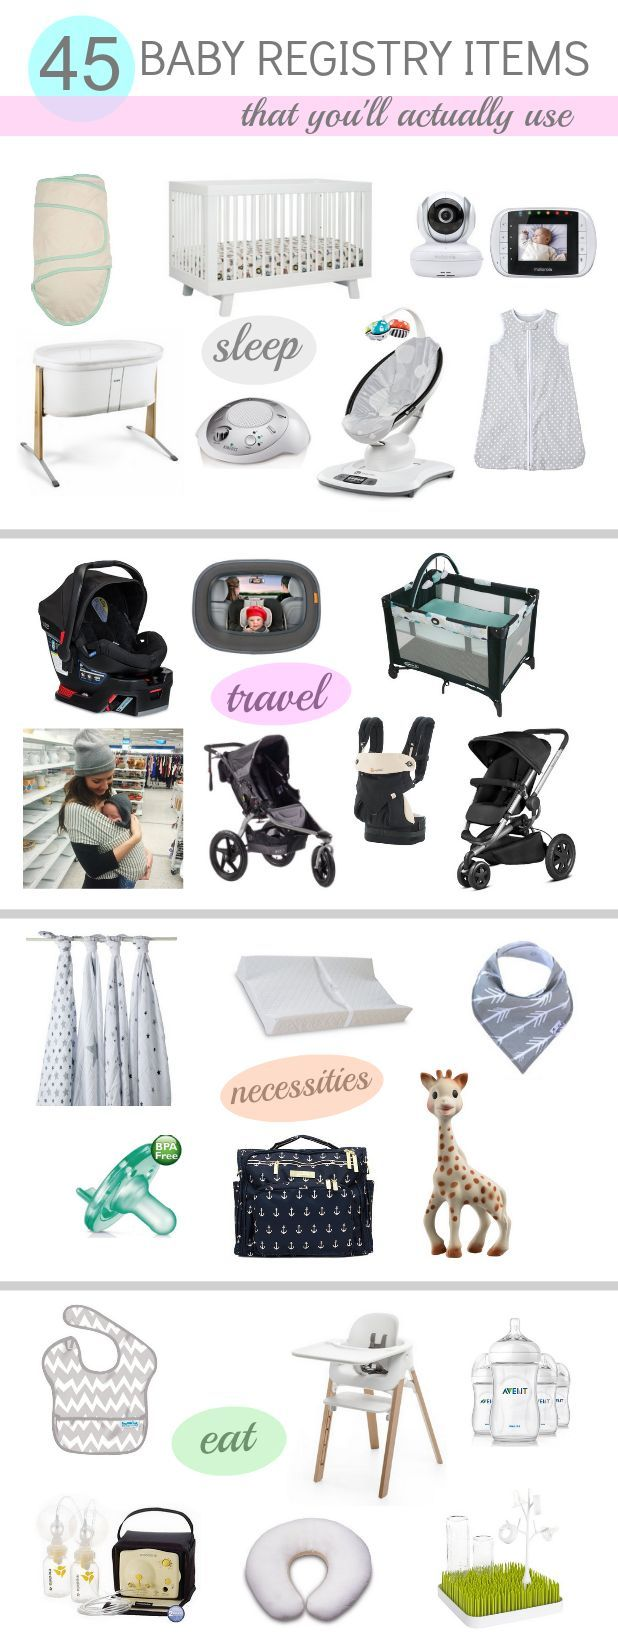 Exceptional A Comprehensive Baby Registry List. Everything You Need For Your Baby!